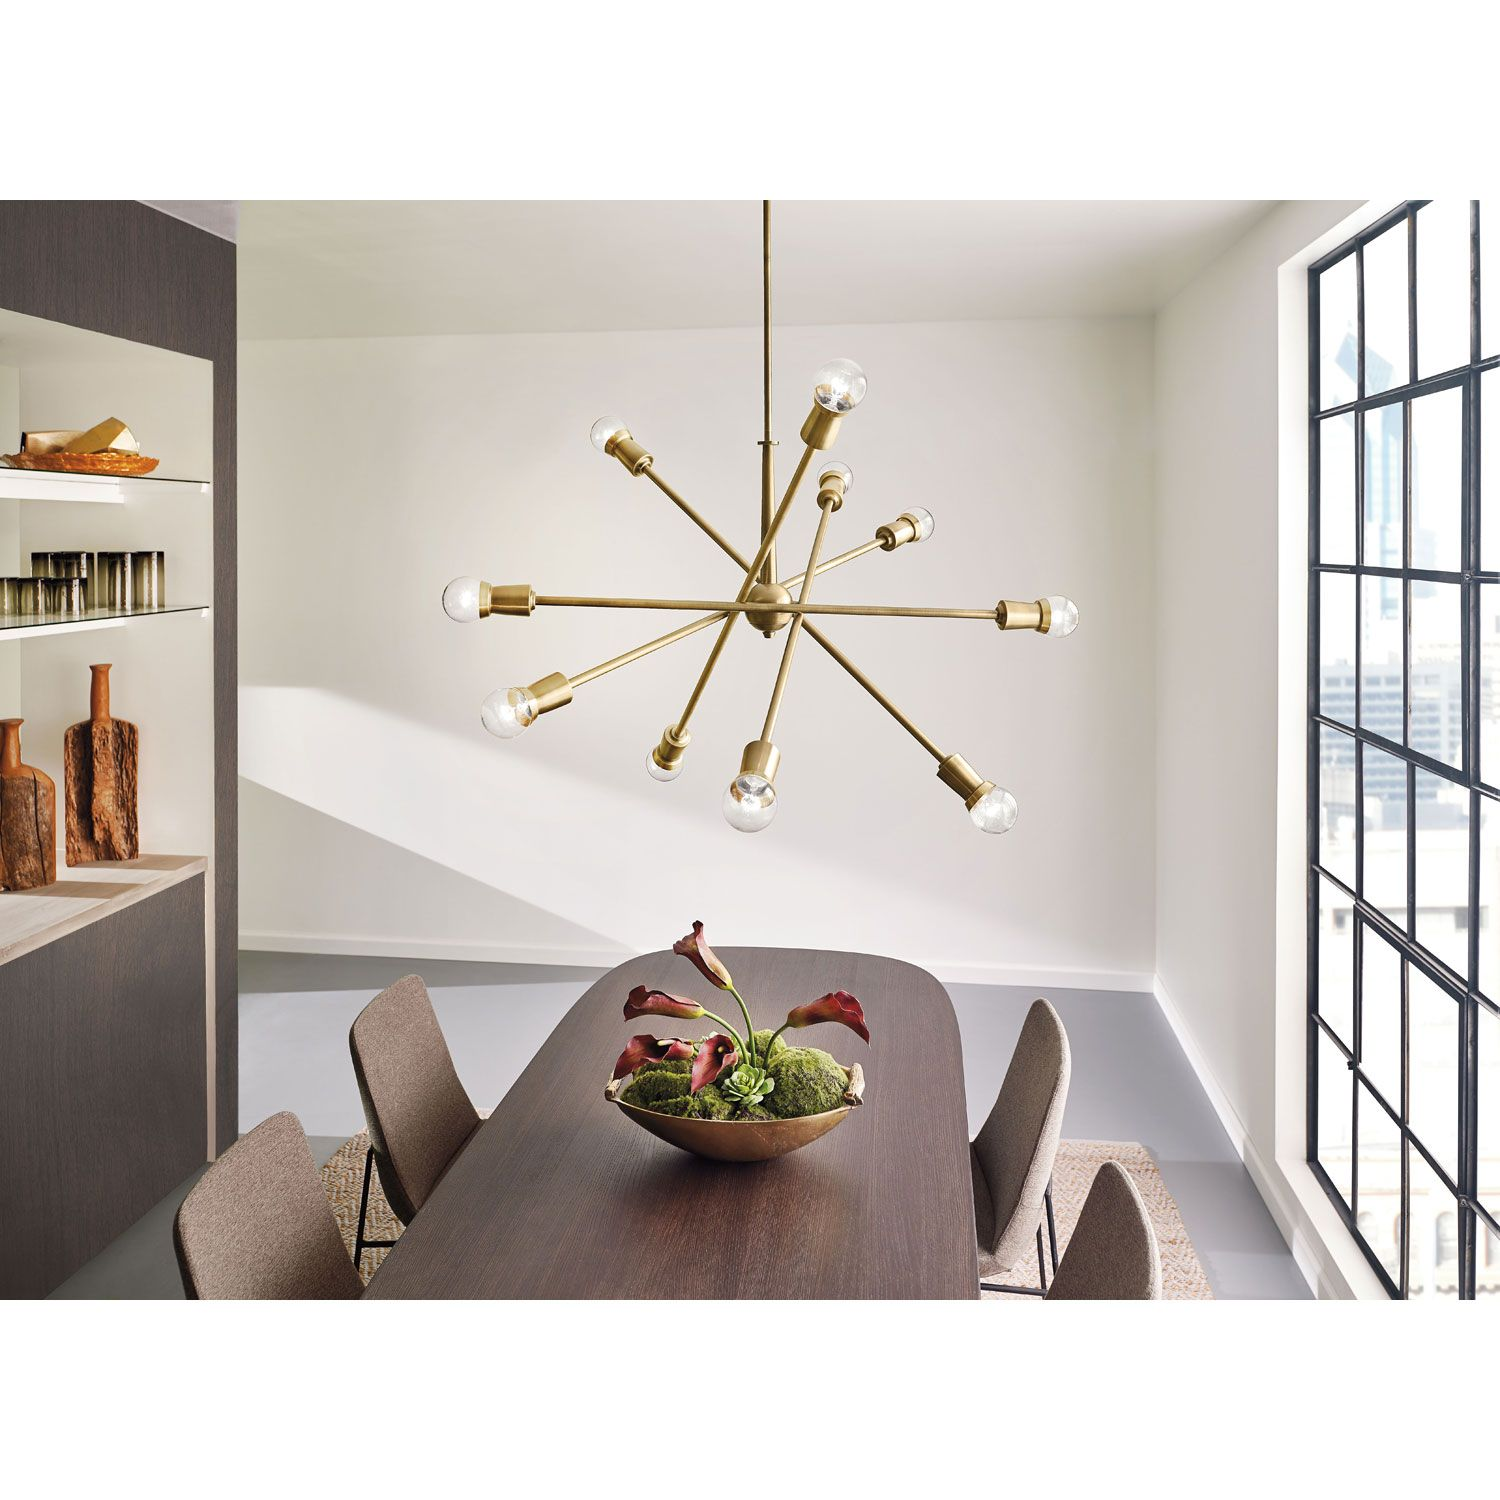 Kichler Dining Room Lighting Pleasing Kichler Armstrong Natural Brass Tenlight Starburst Pendant Design Decoration